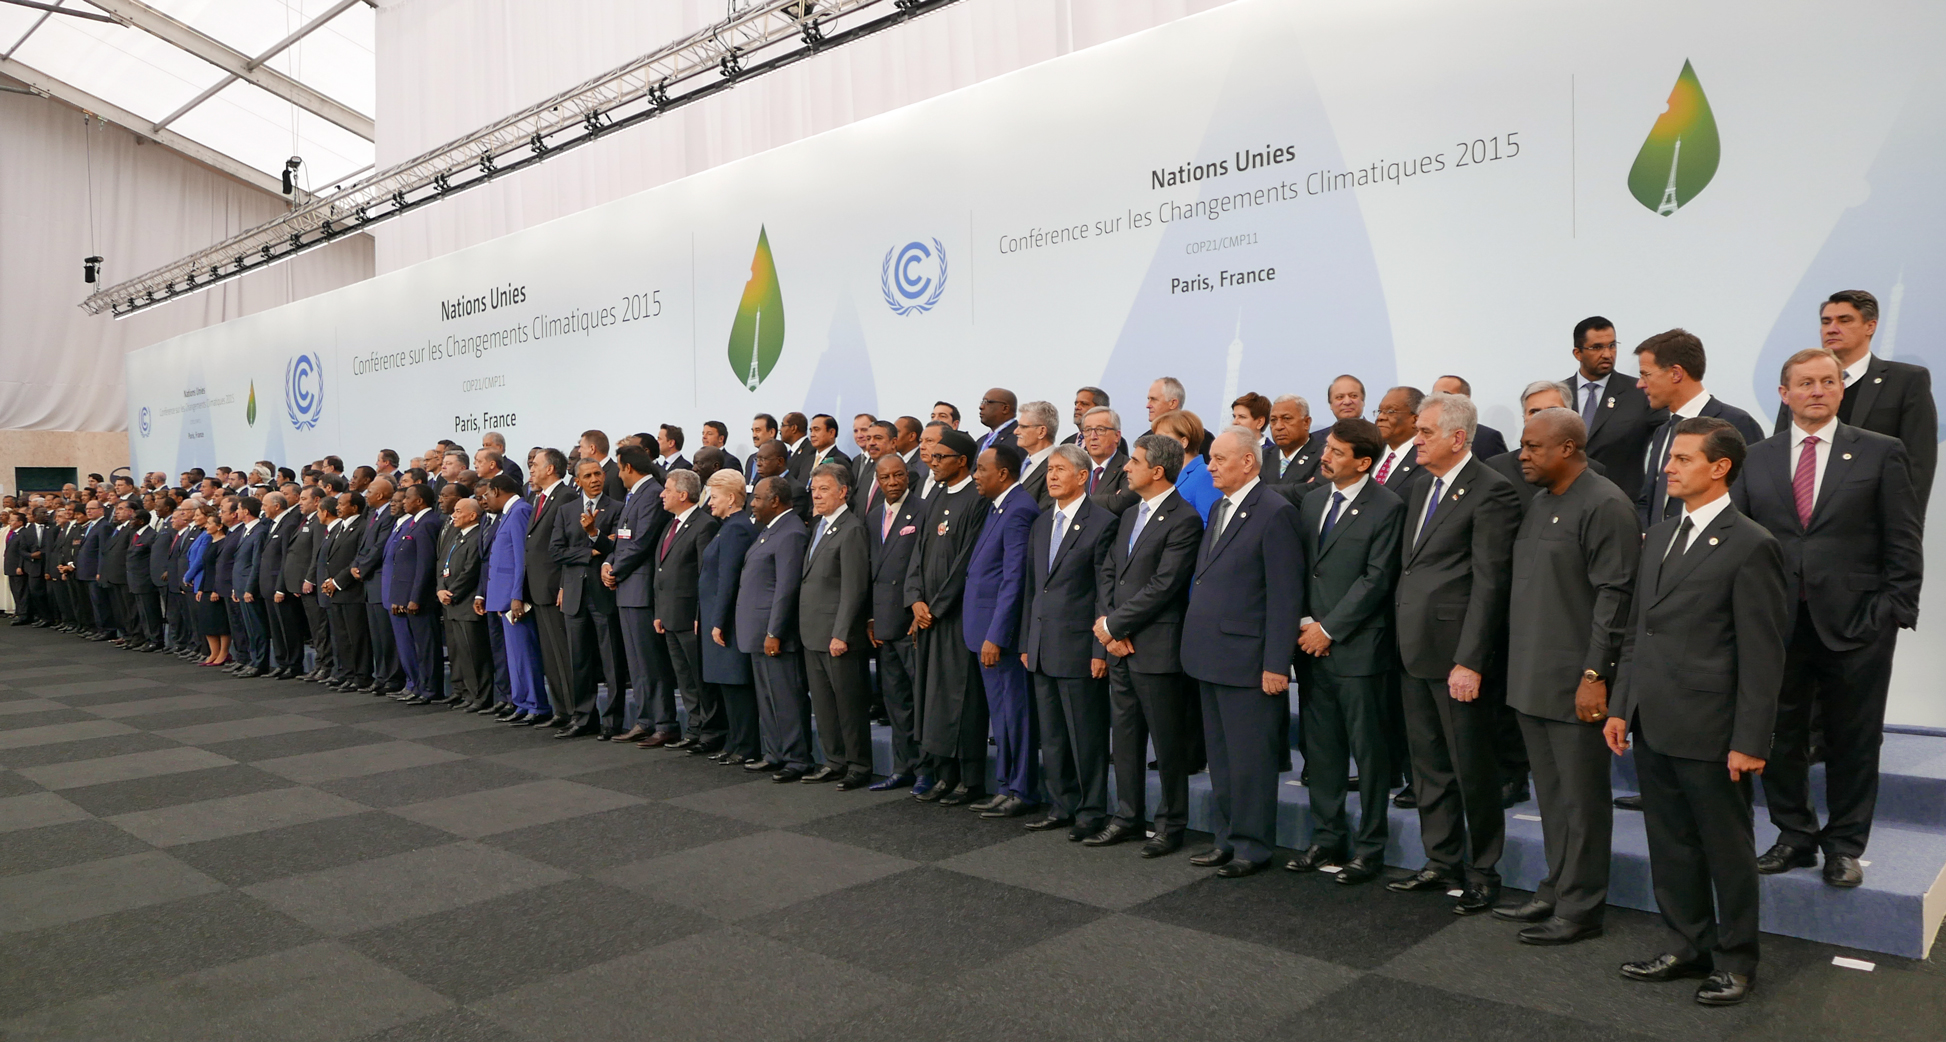 Heads of delegations at the 2015 United Nations Climate Change Conference in Paris. [Presidencia de la República Mexicana, Flickr.com]